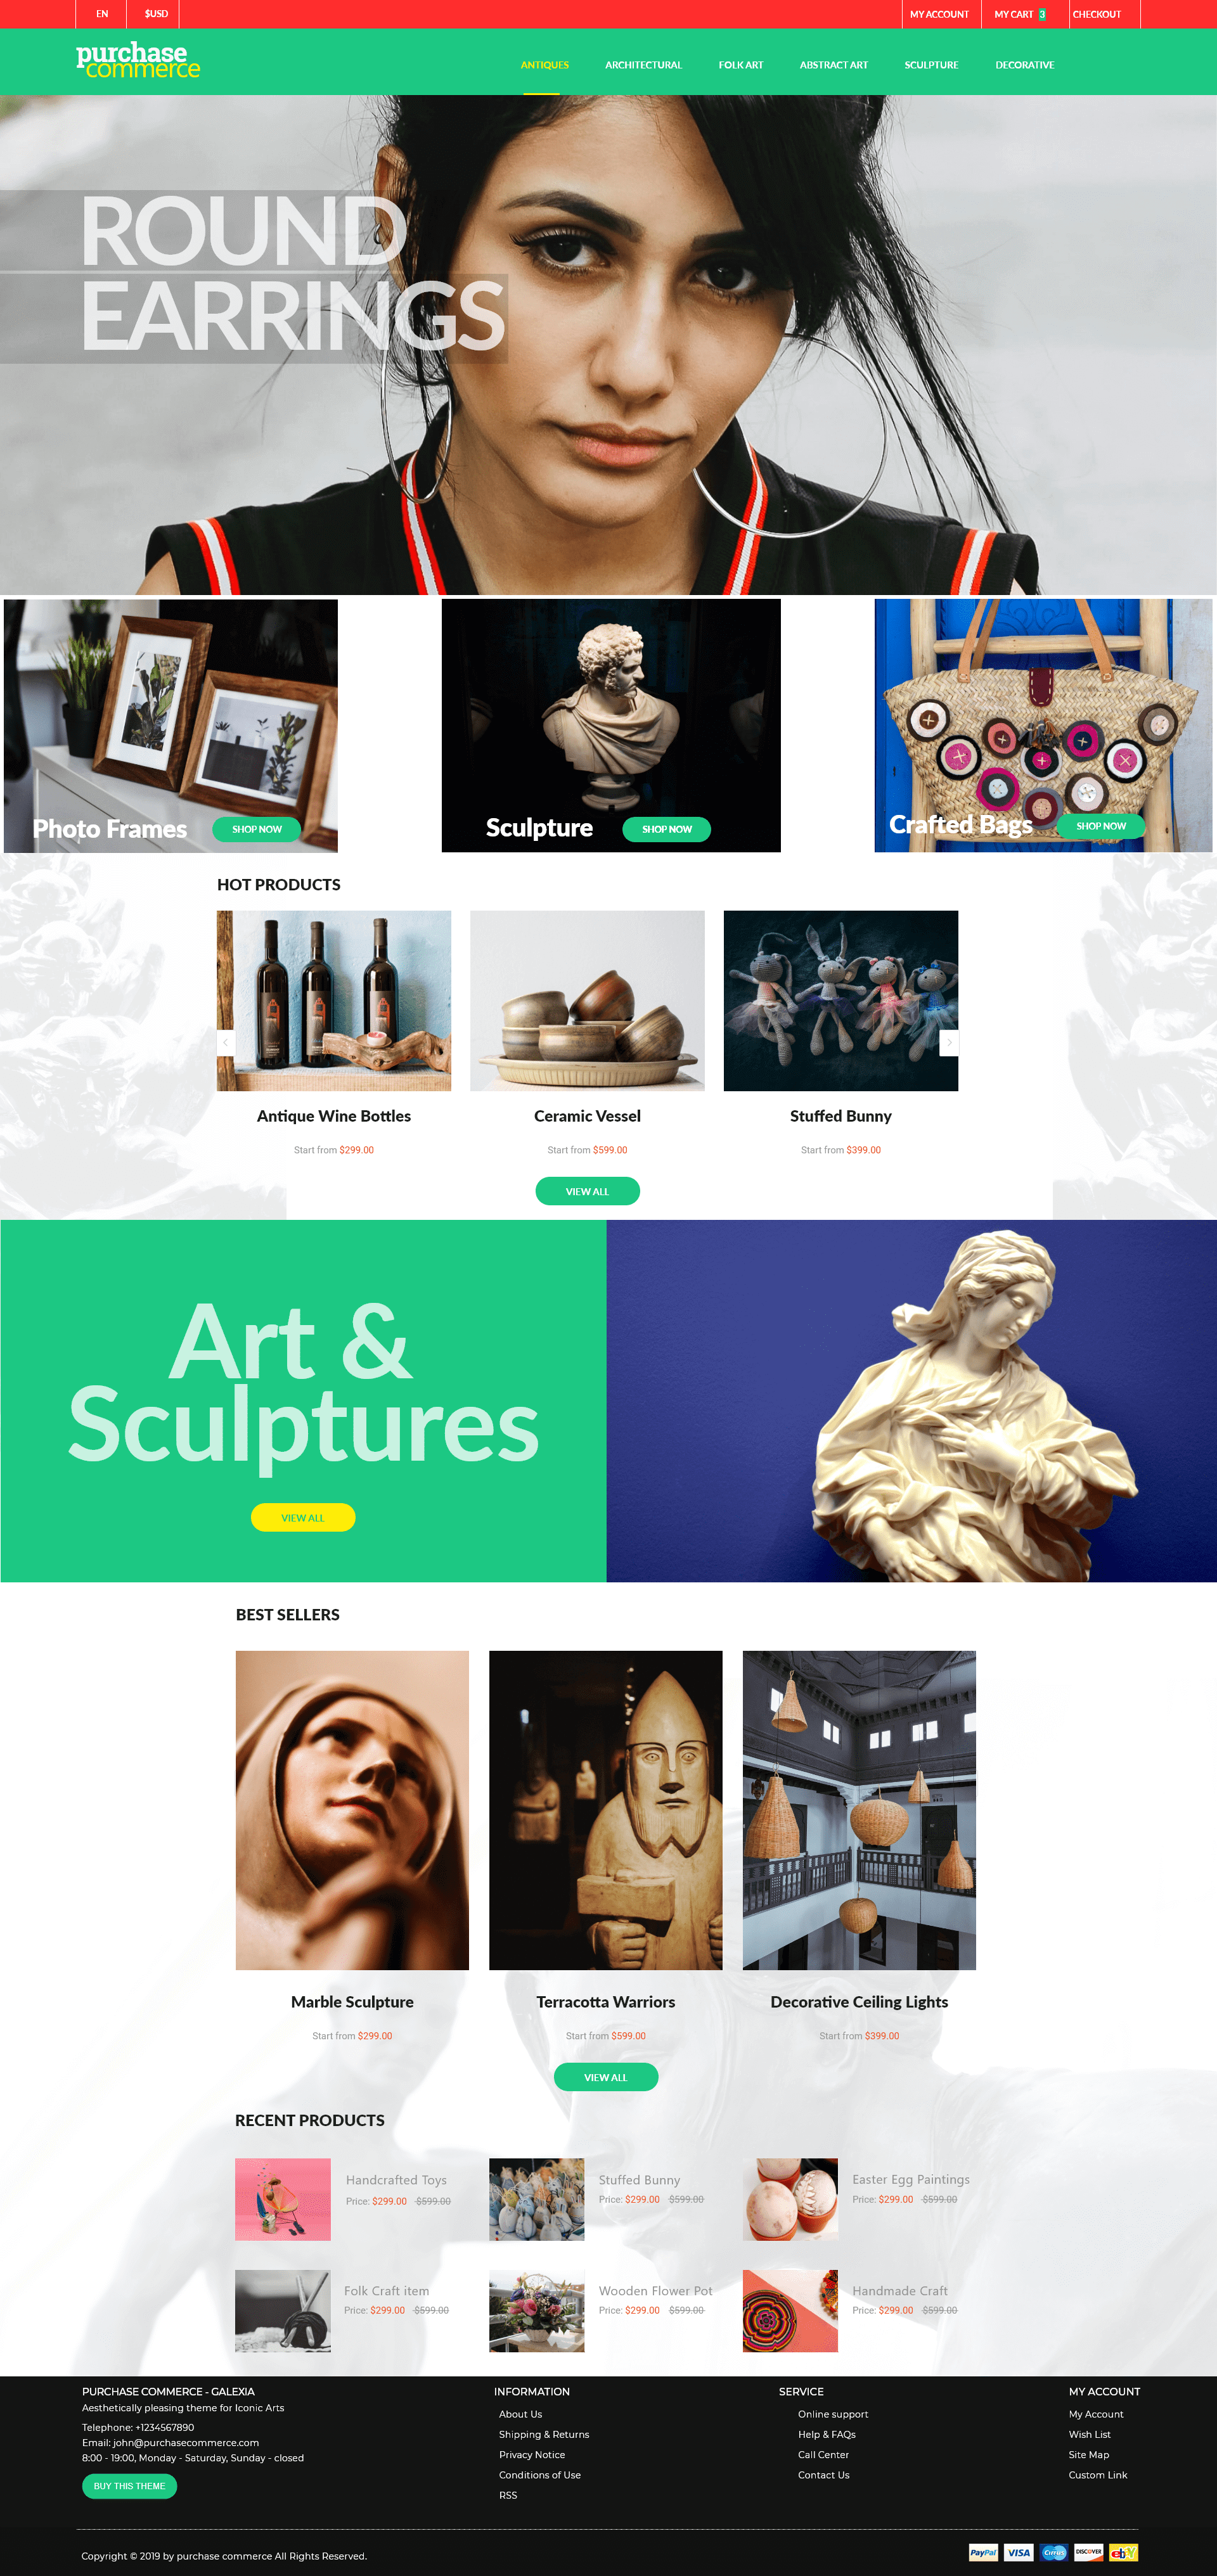 art-gallery-marketplace-software